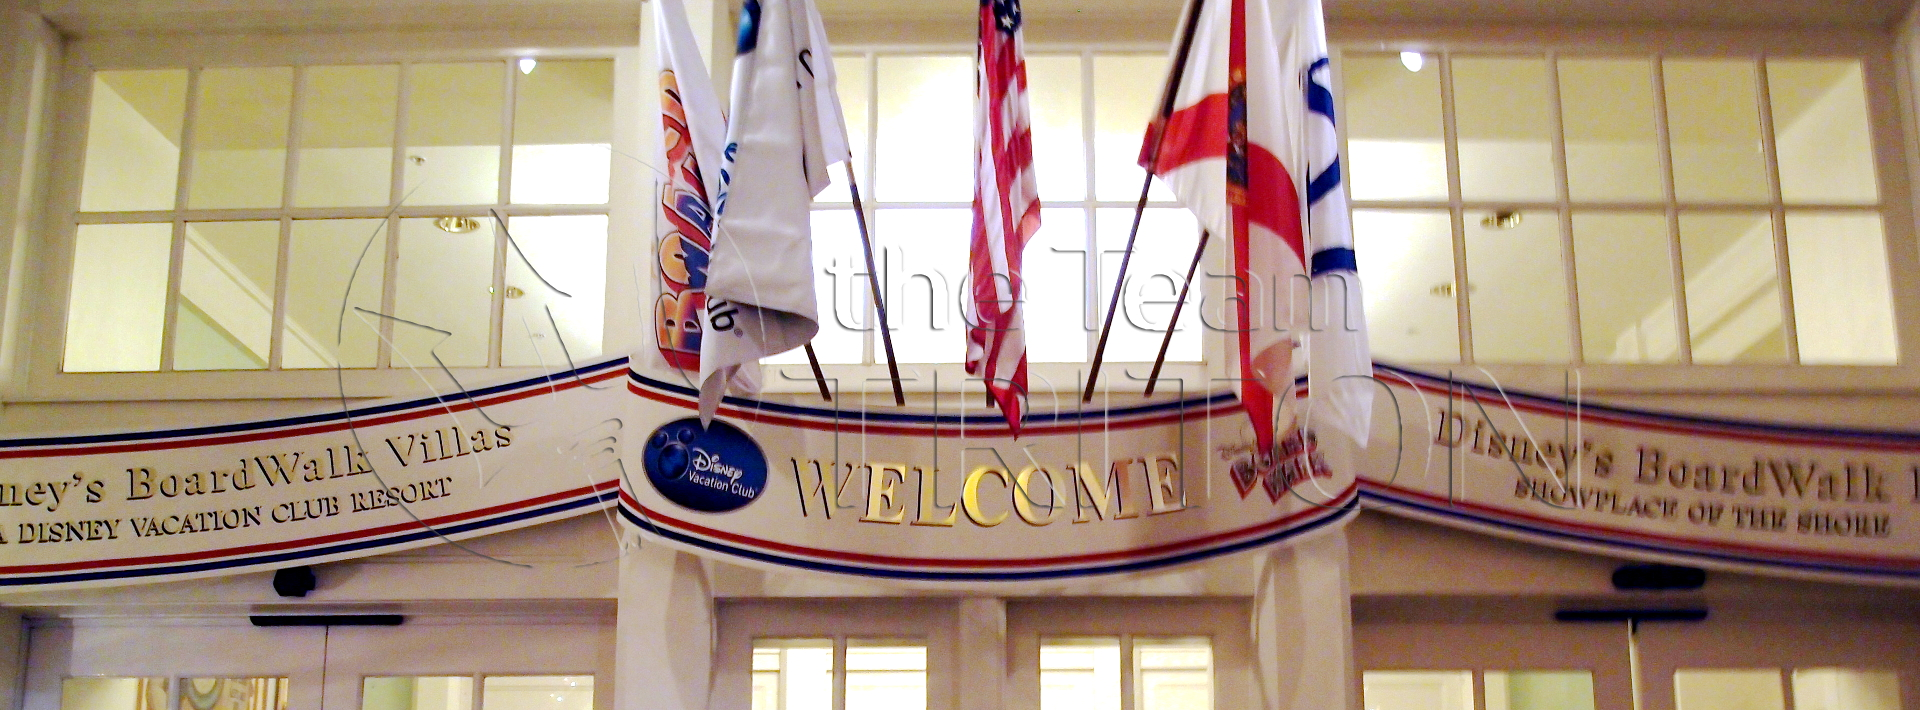 BoardWalk-entrance-flags-001